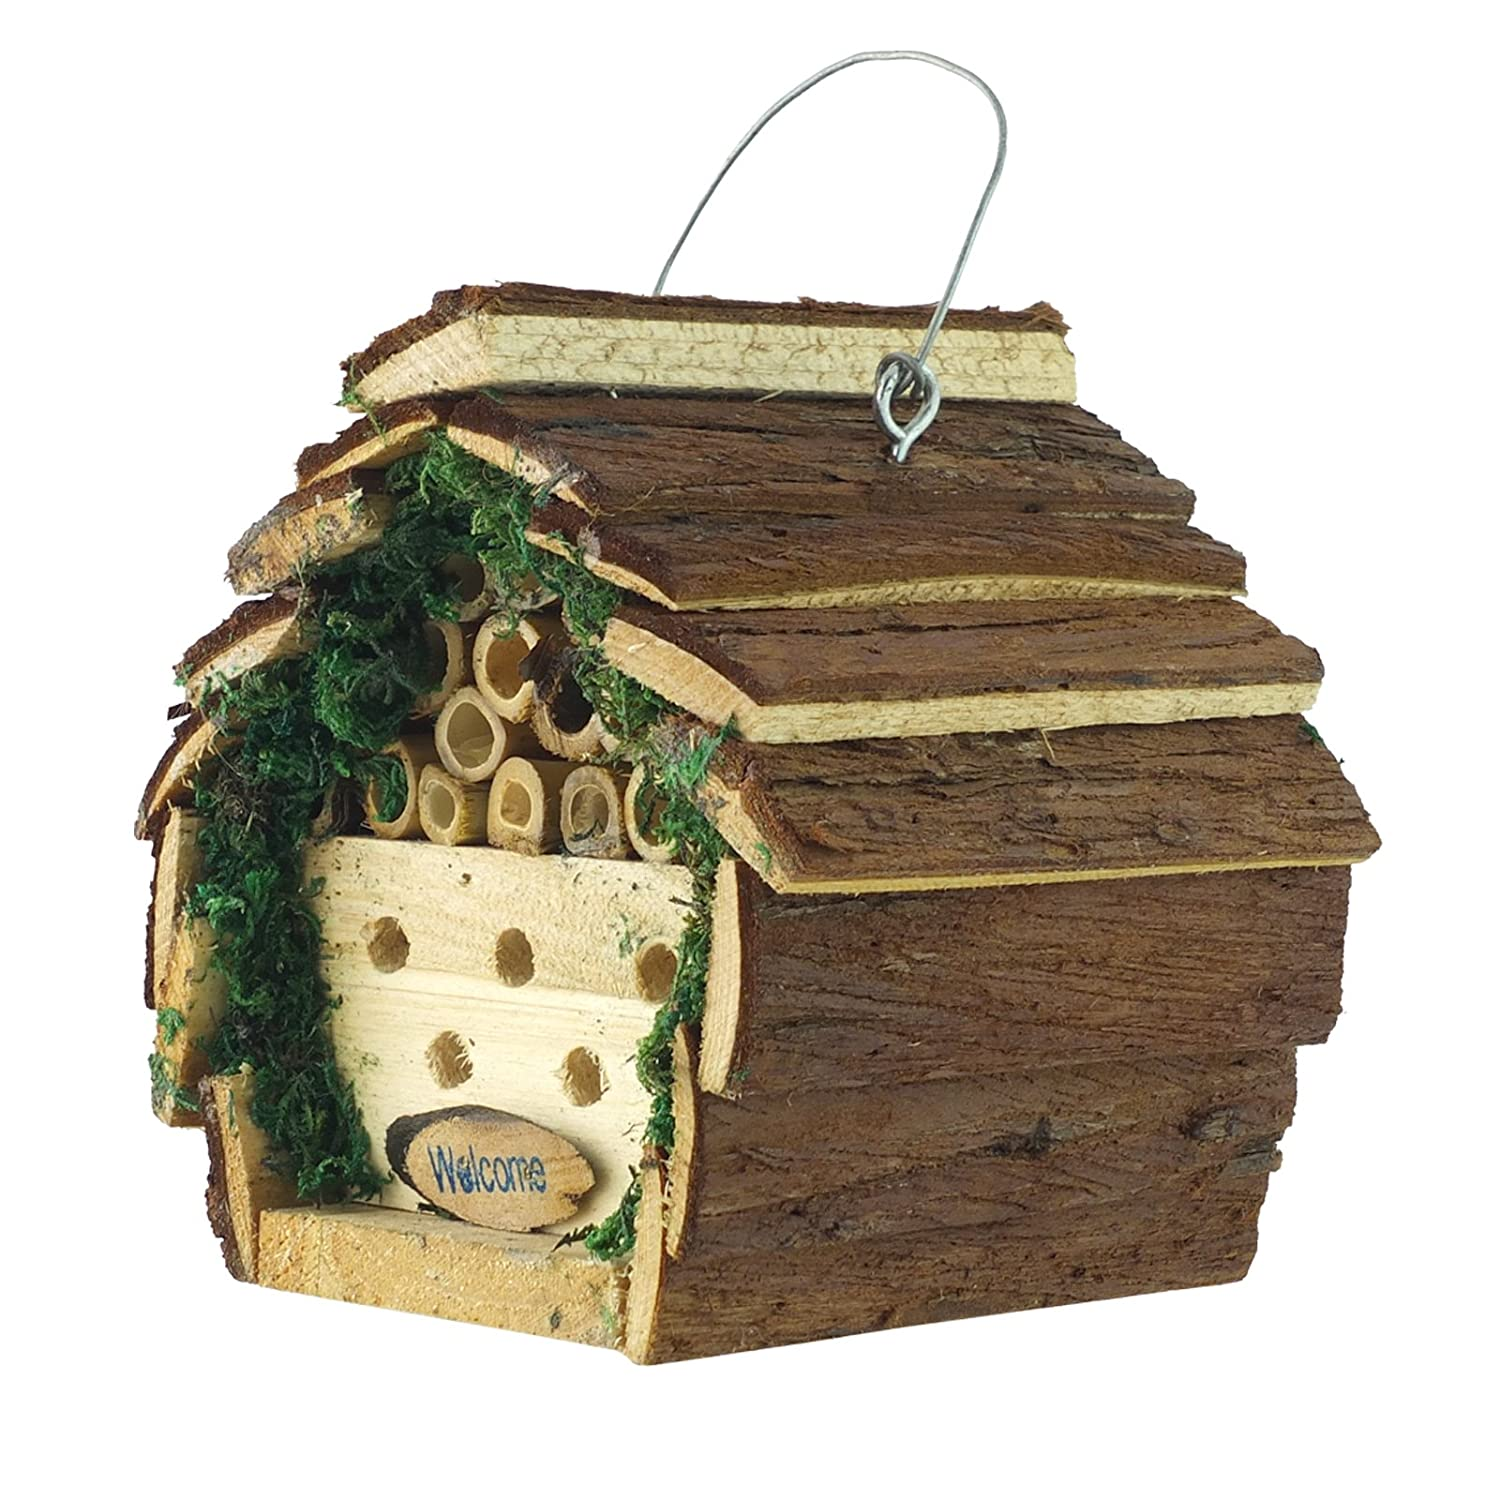 Insect / Bee/ Bug House / Hotel / Shelter Box For Garden, Lawn (Pack of 1) Bid Buy Direct